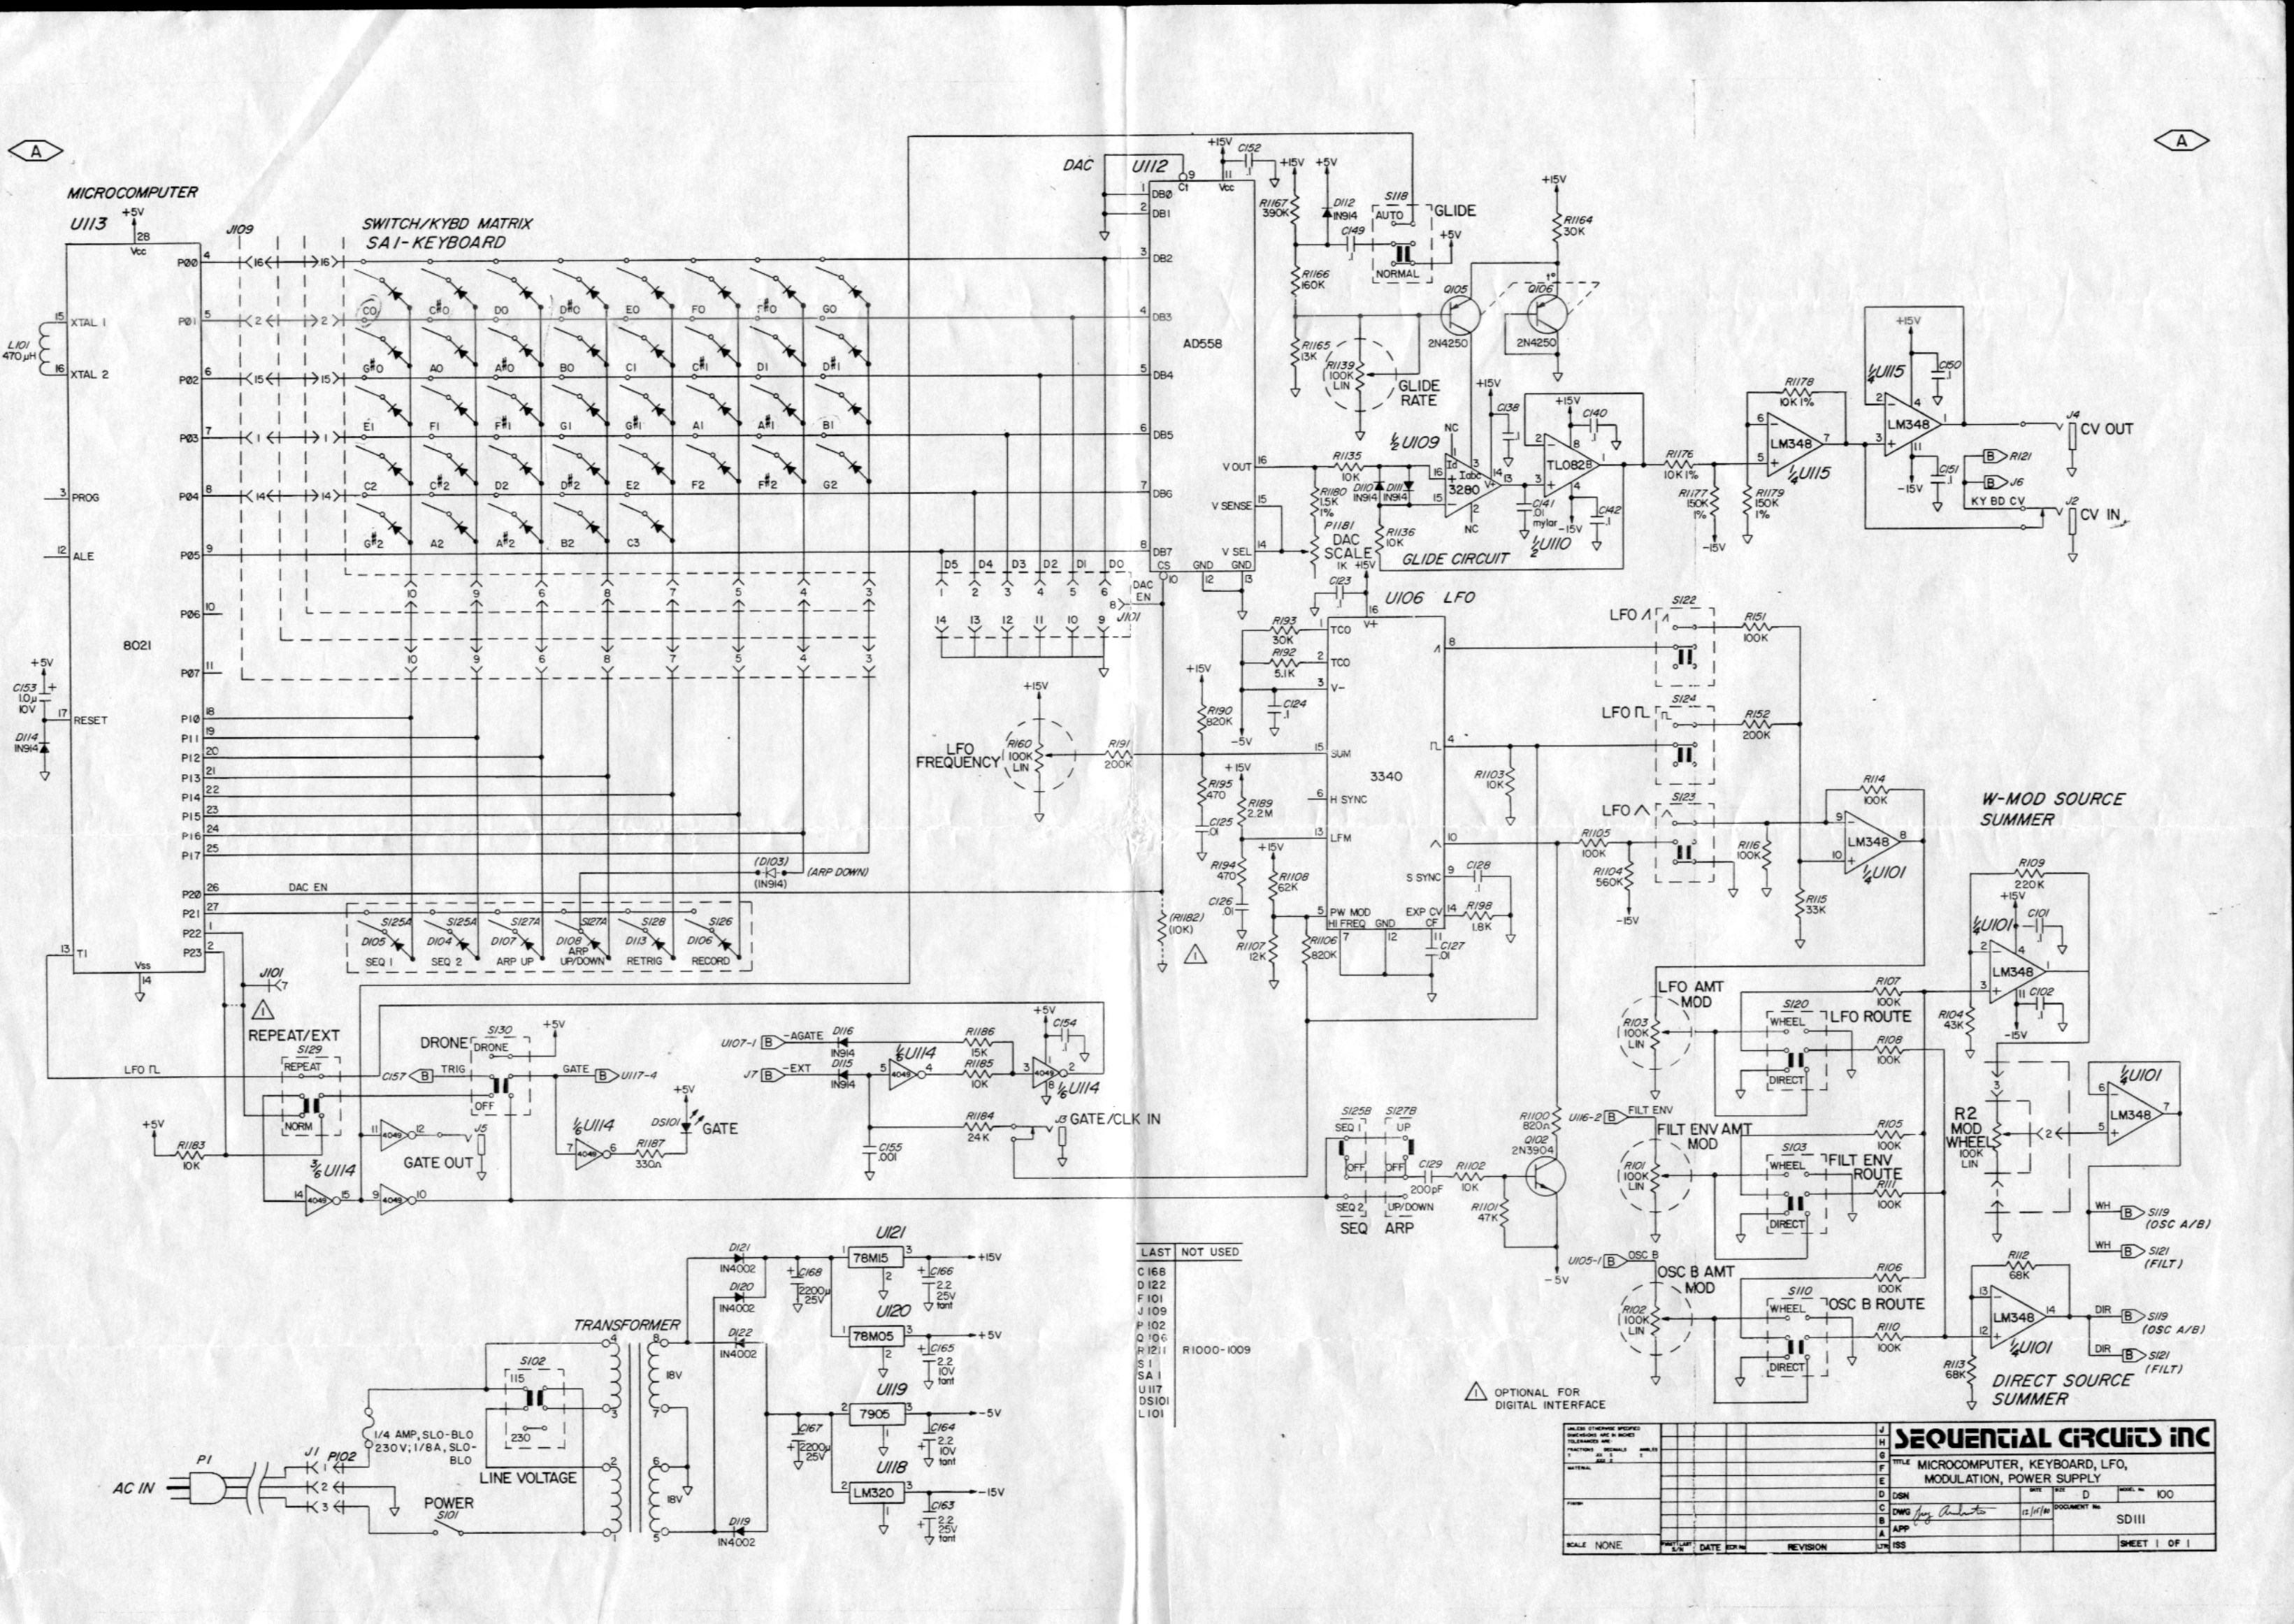 Taurus Pt99 Diagram Schematics Sequential Circuits Pro One Schematic 3282x2324